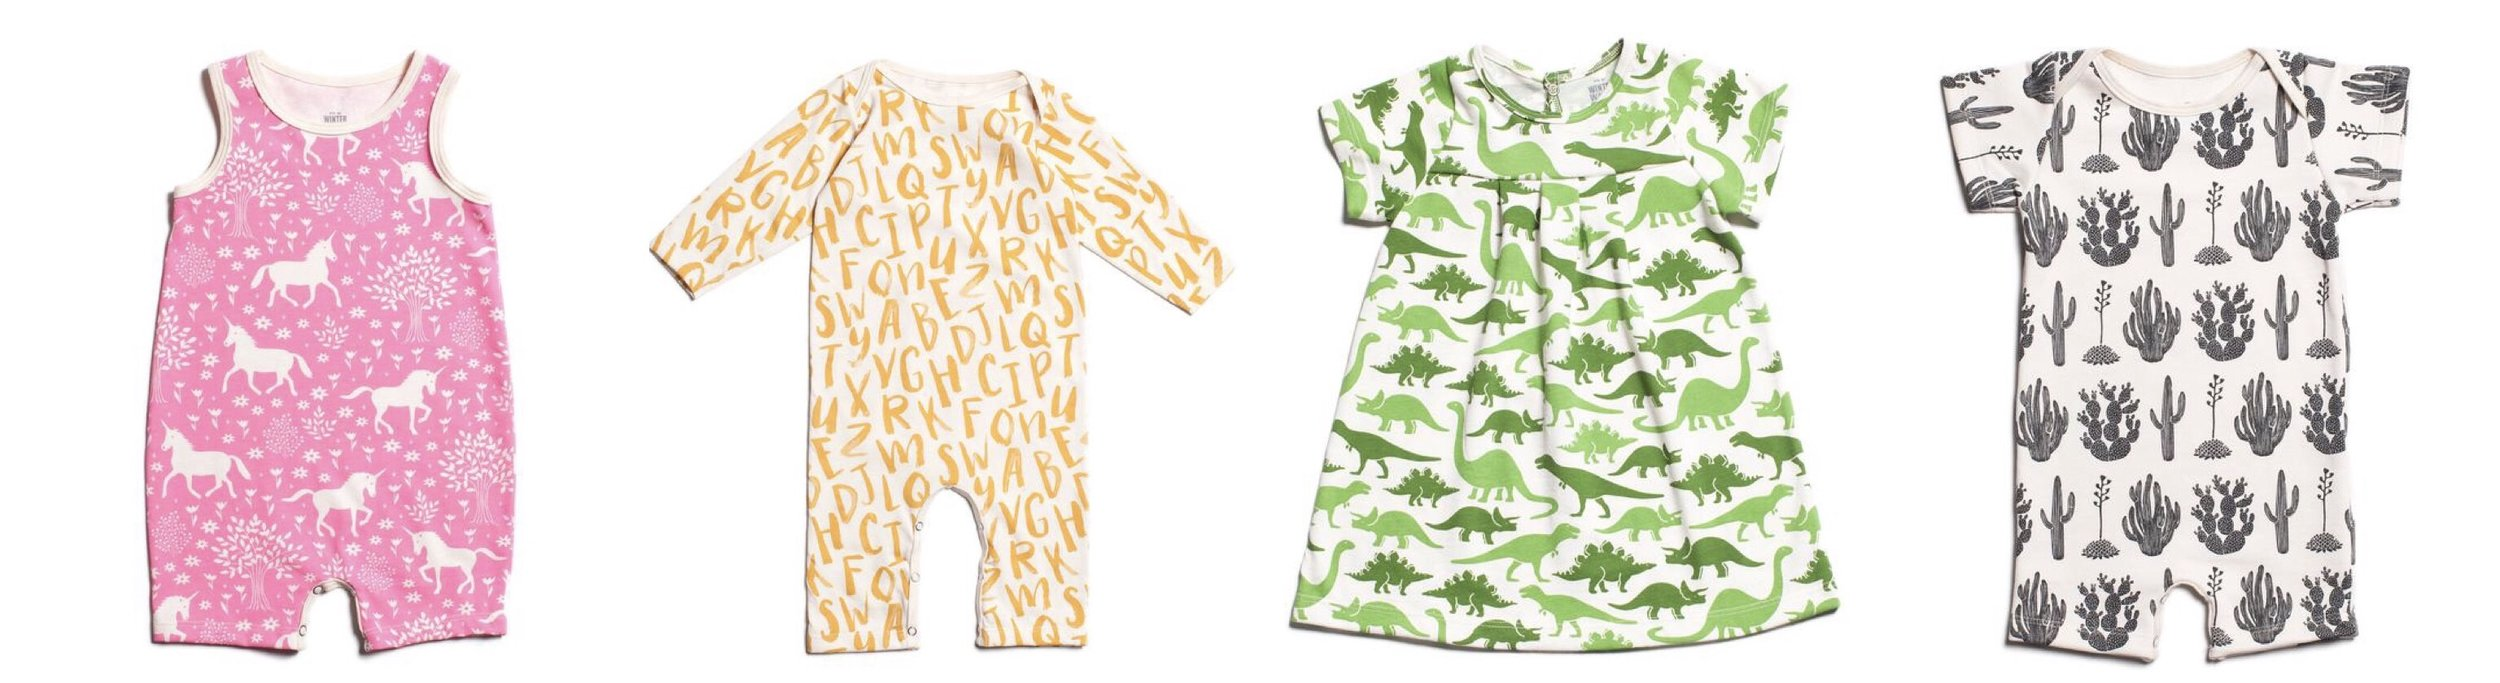 Winter Water Factory baby rompers and dresses